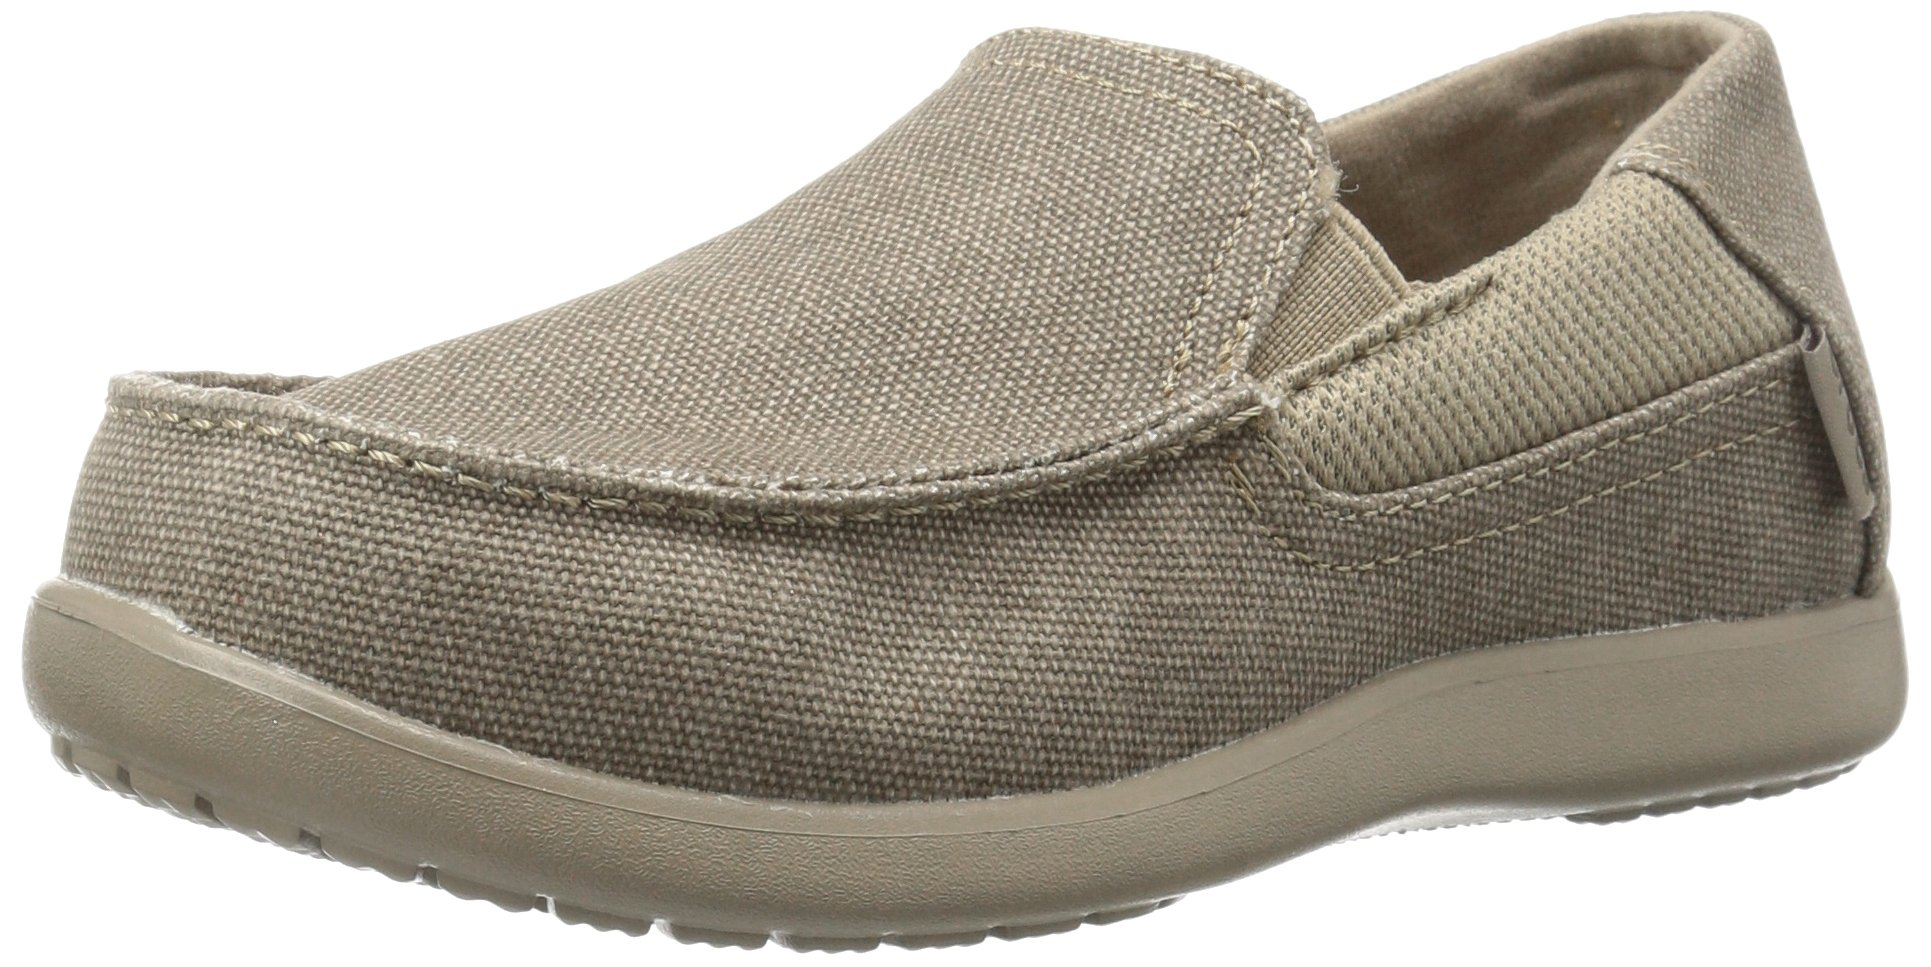 Crocs Boys' Santa Cruz II Grade School Loafer Khaki/Cobblestone 3 M US Little Kid